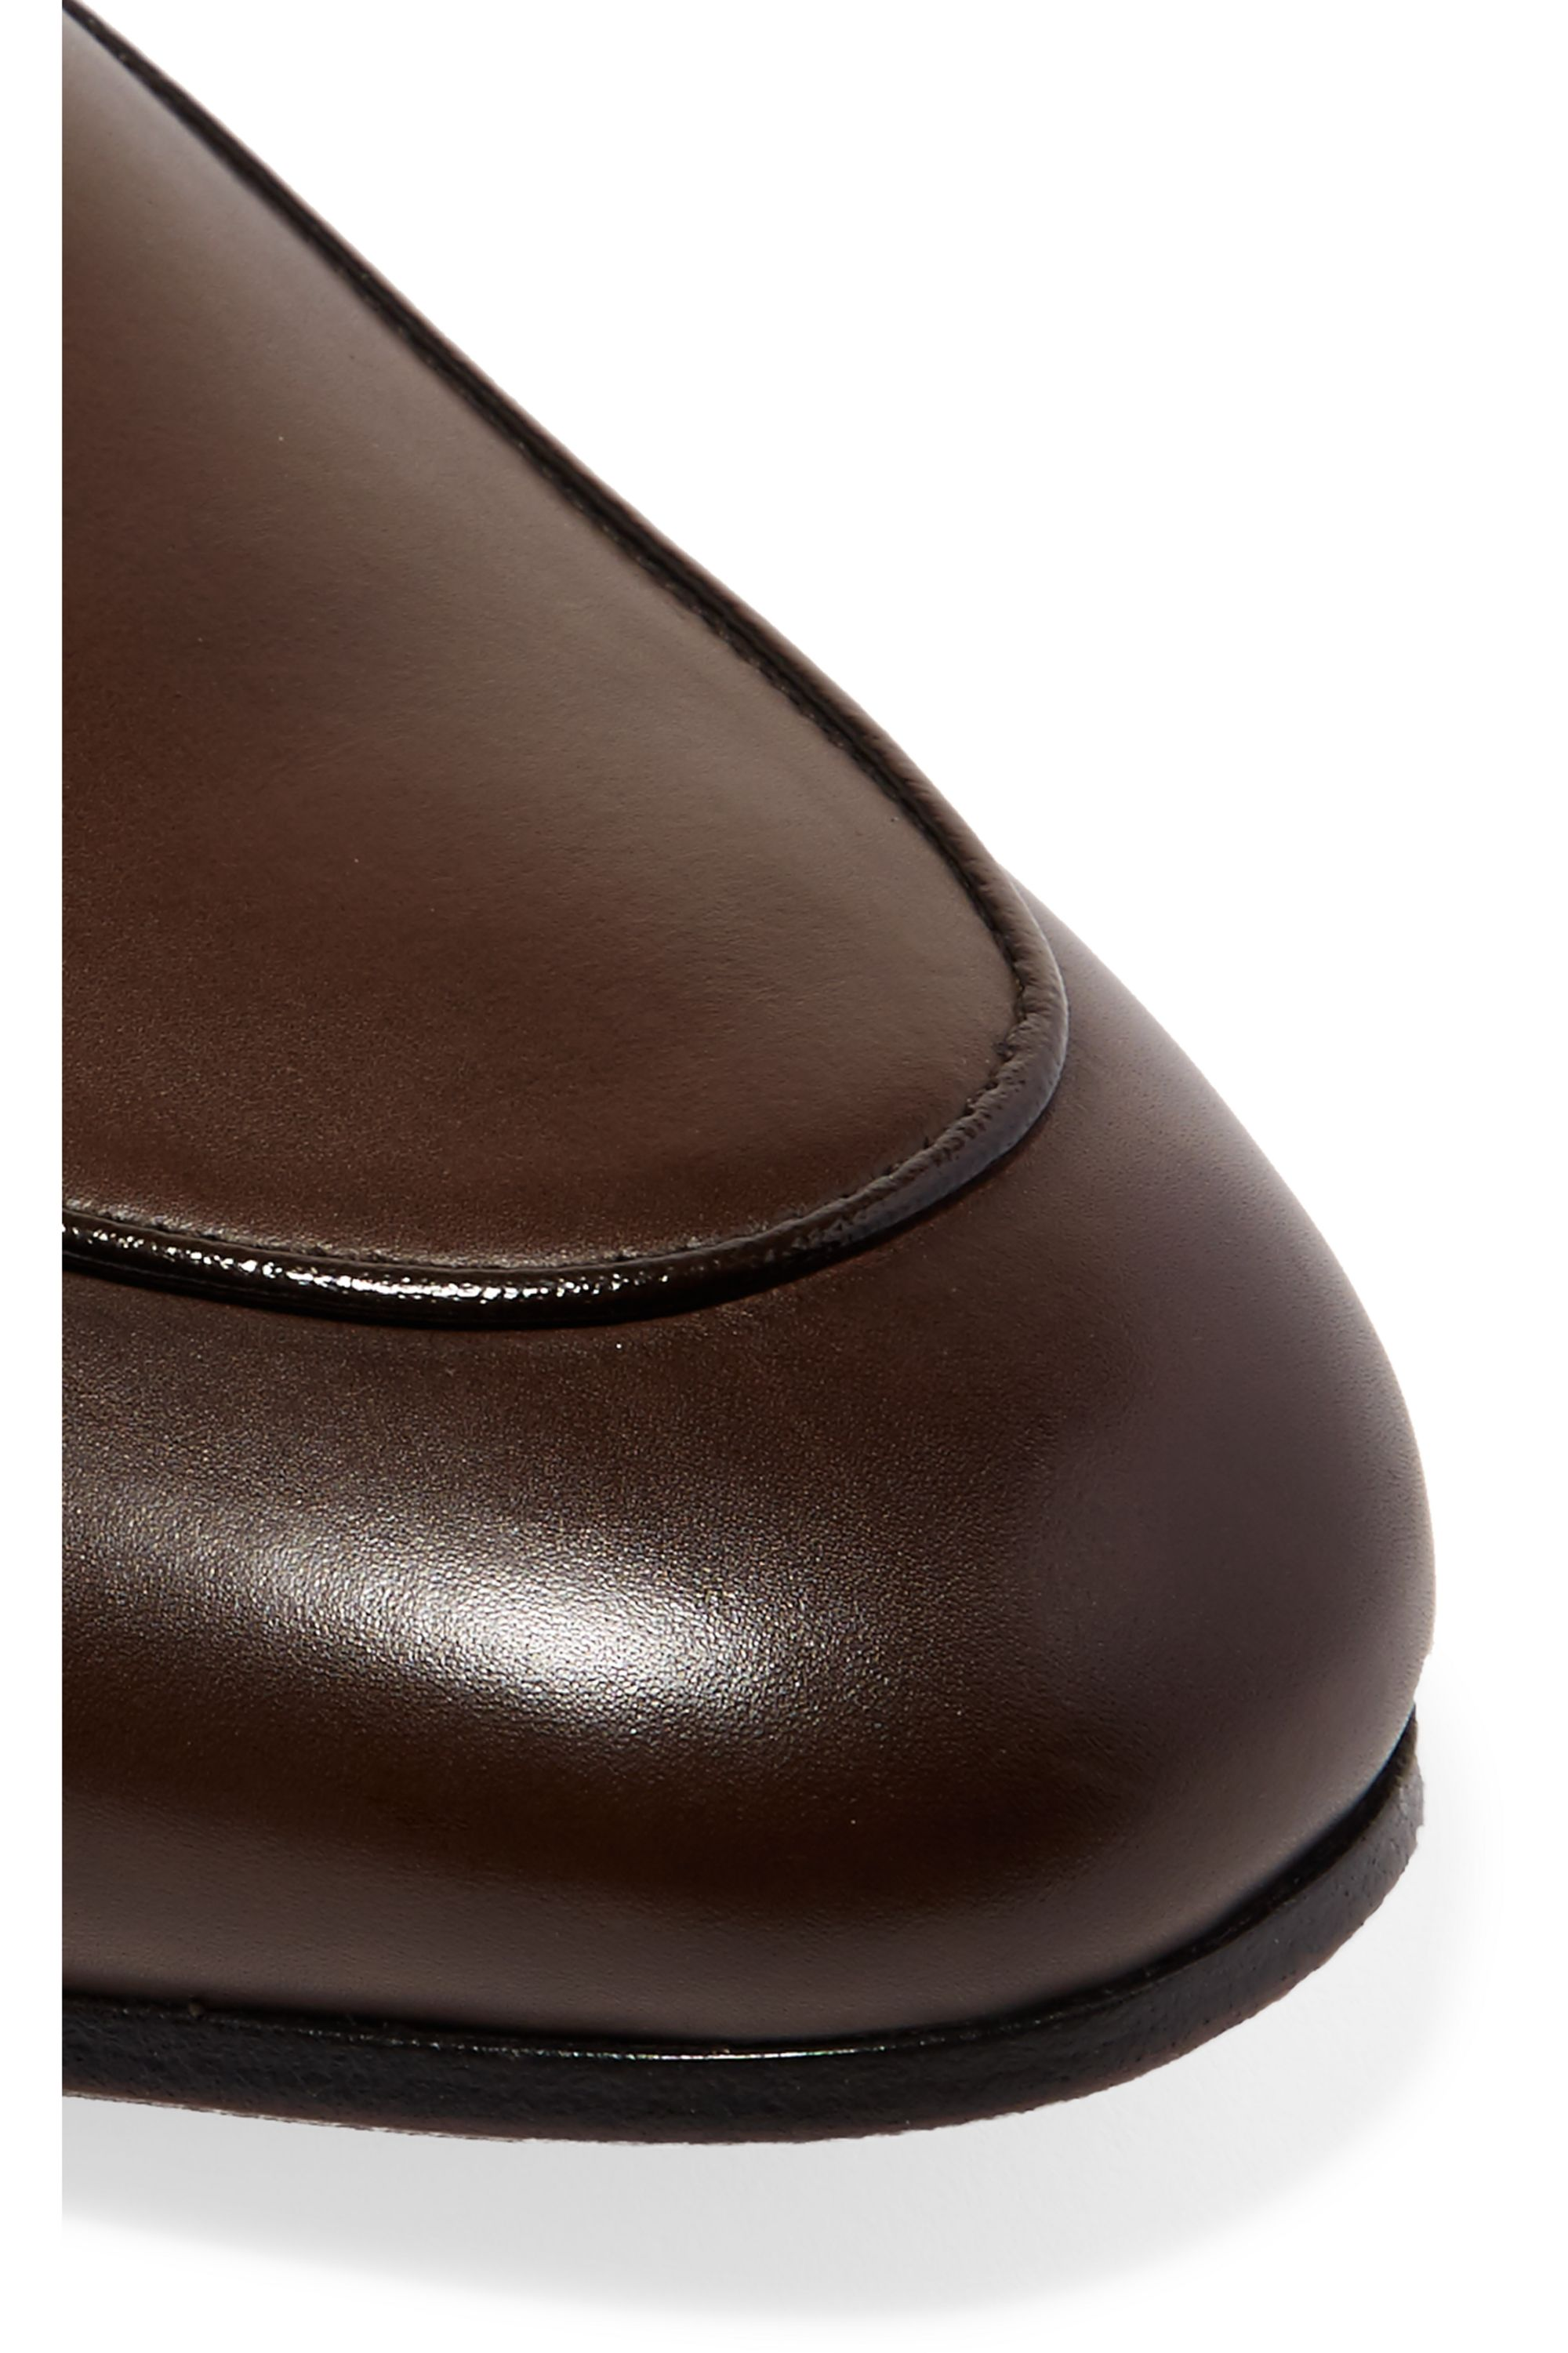 Gucci Horsebit-detailed shearling-lined leather slippers